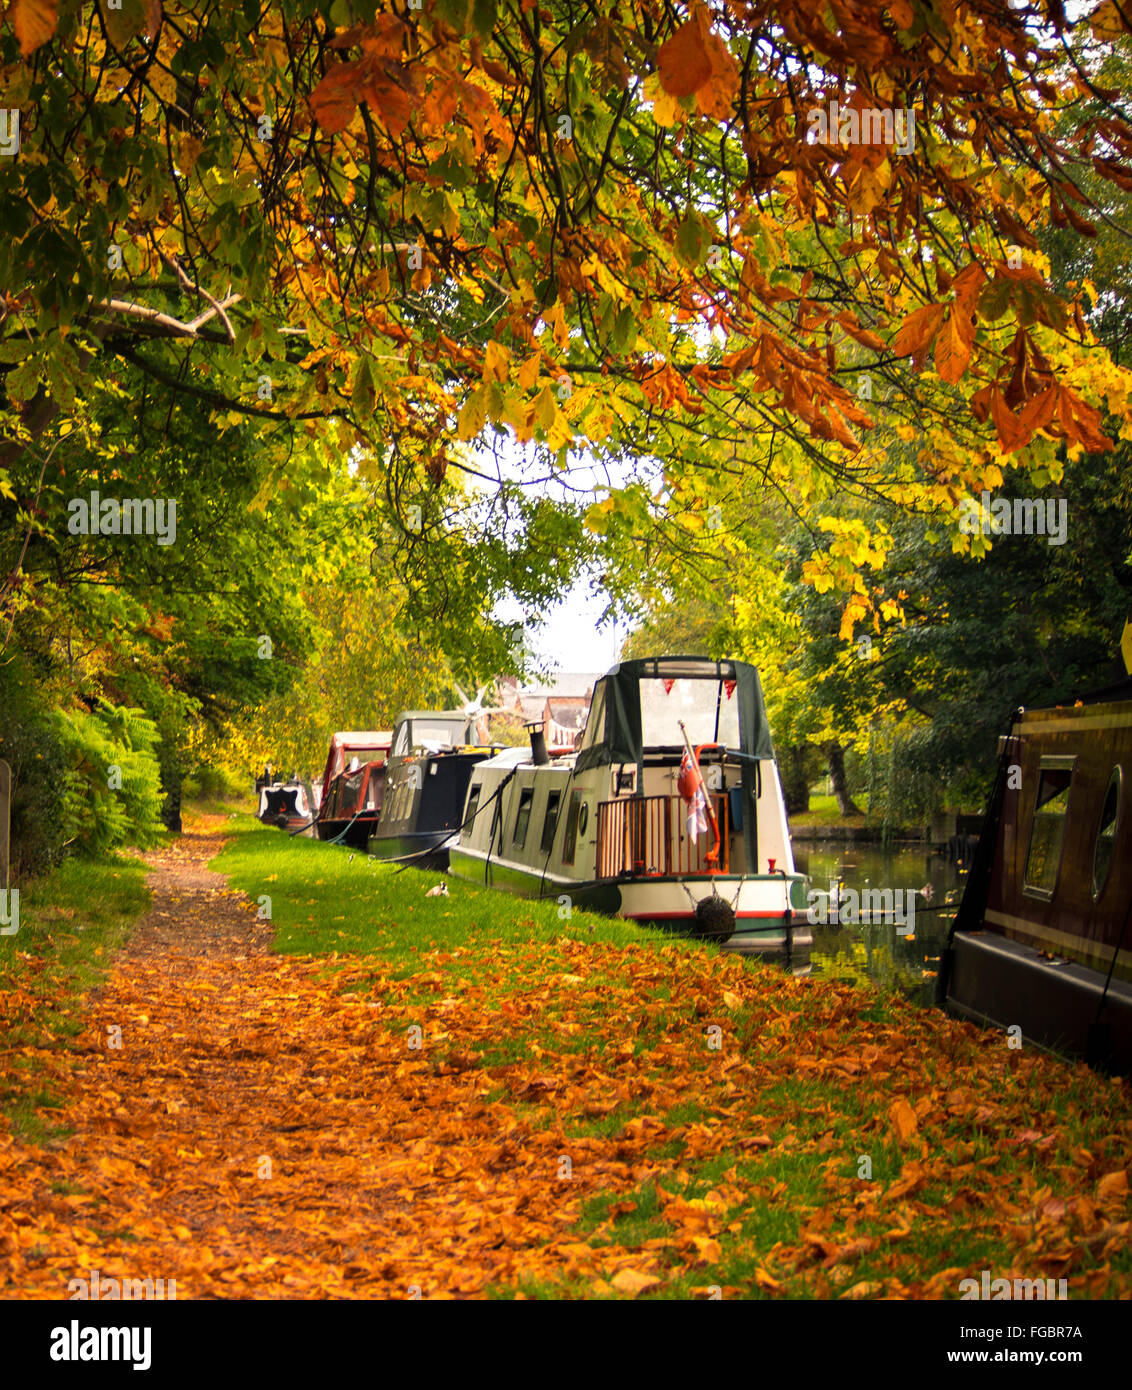 Boats Moored In Bridgewater Canal By Trees During Autumn - Stock Image